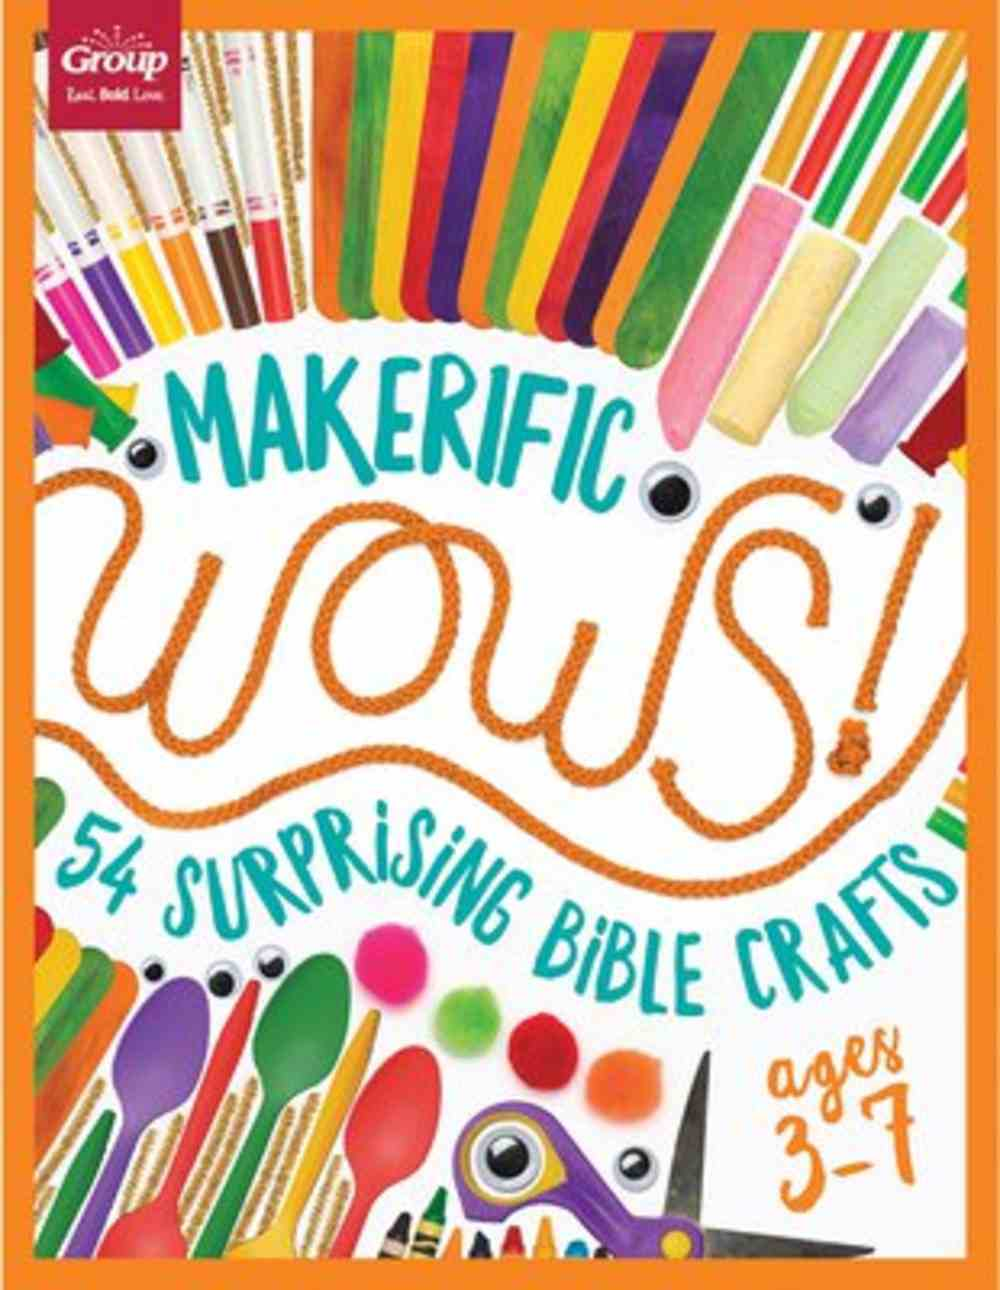 Makerific Wows!: 54 Surprising Bible Crafts (For Ages 3-7) Paperback